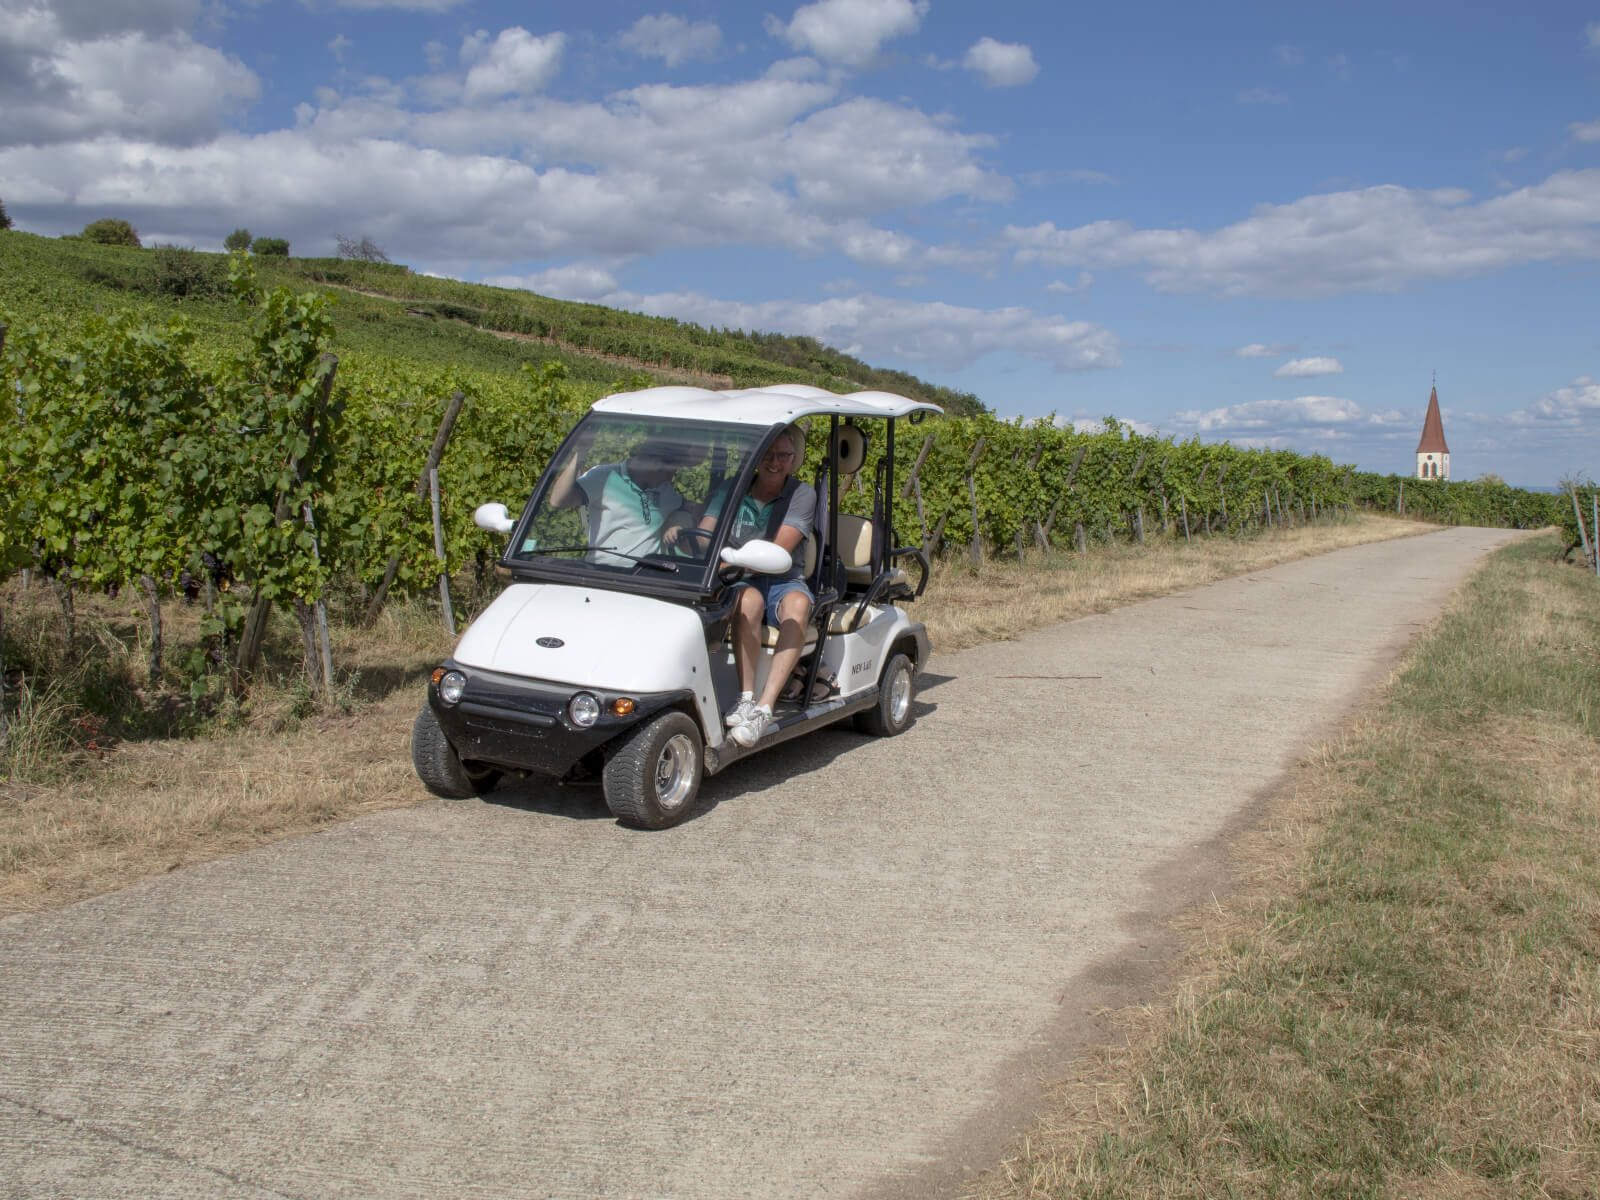 https://apps.tourisme-alsace.info/photos/kaysersberg/photos/promenade-dans-les-vignes-en-voiturette-electrique-domaine-pierre-adam-alsace-ammerschwihr.jpg